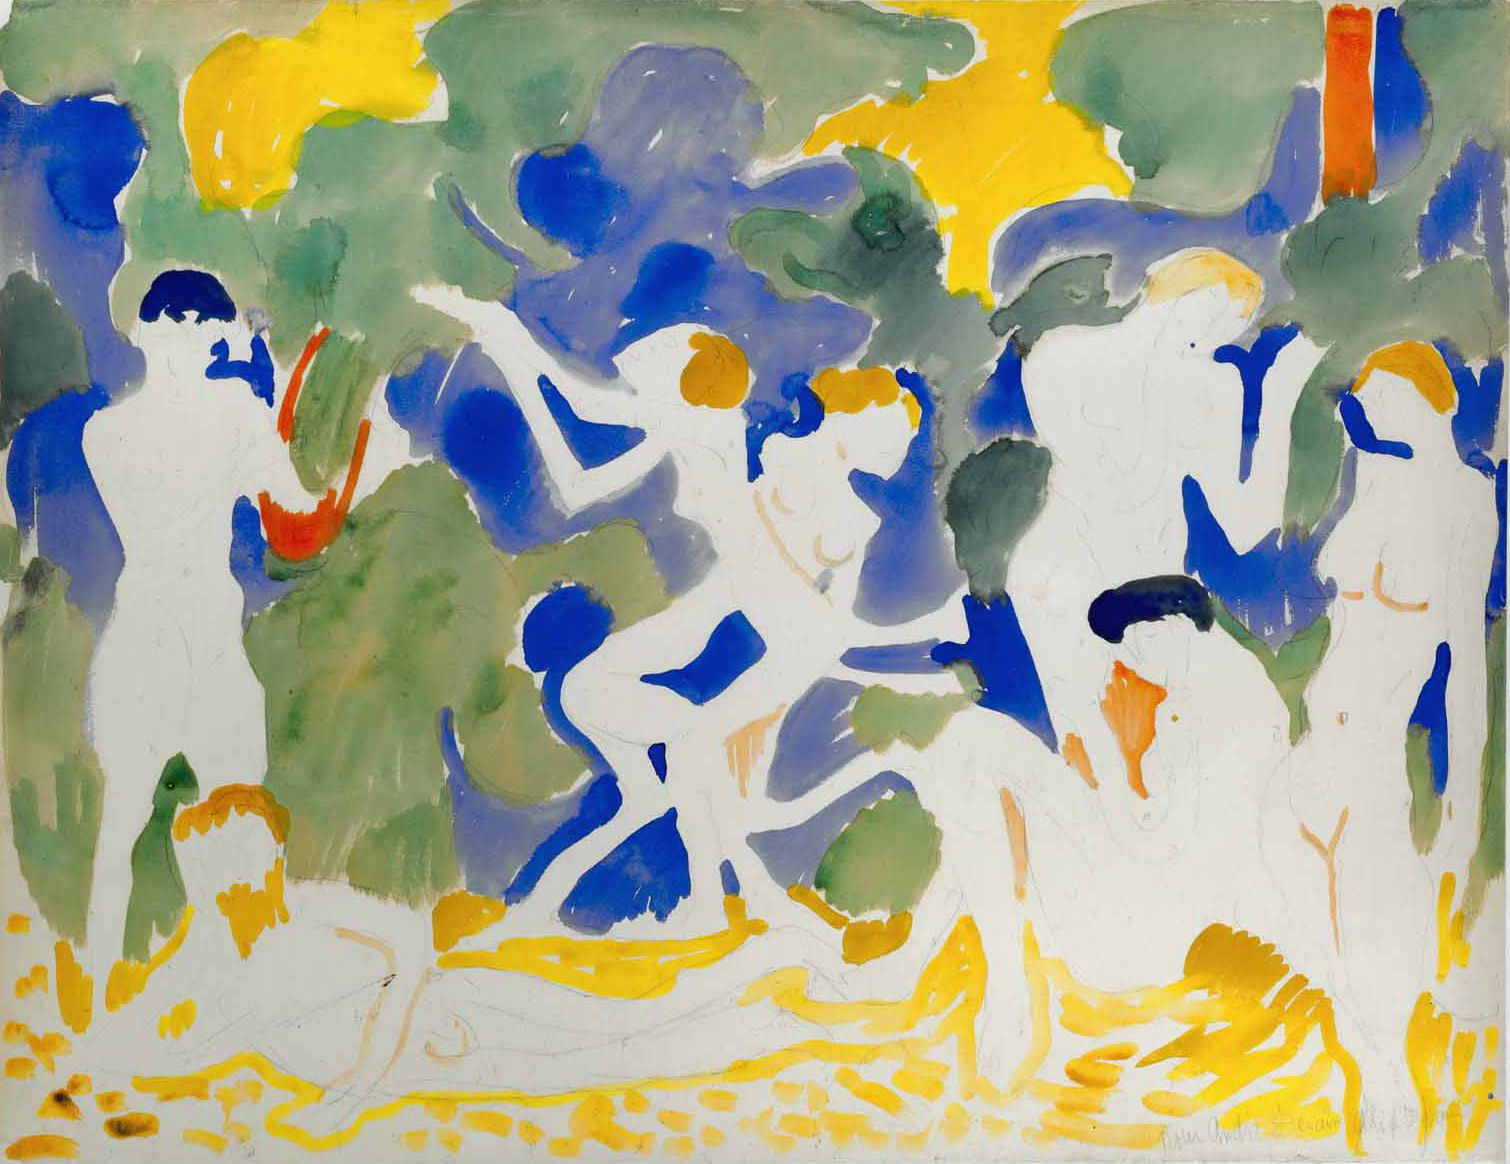 André Derain (1880–1954), La Musique, ca. 1904–1905, watercolour and pencil on paper, 50 x 64.6 cm / 19.68 x 25.20 in.